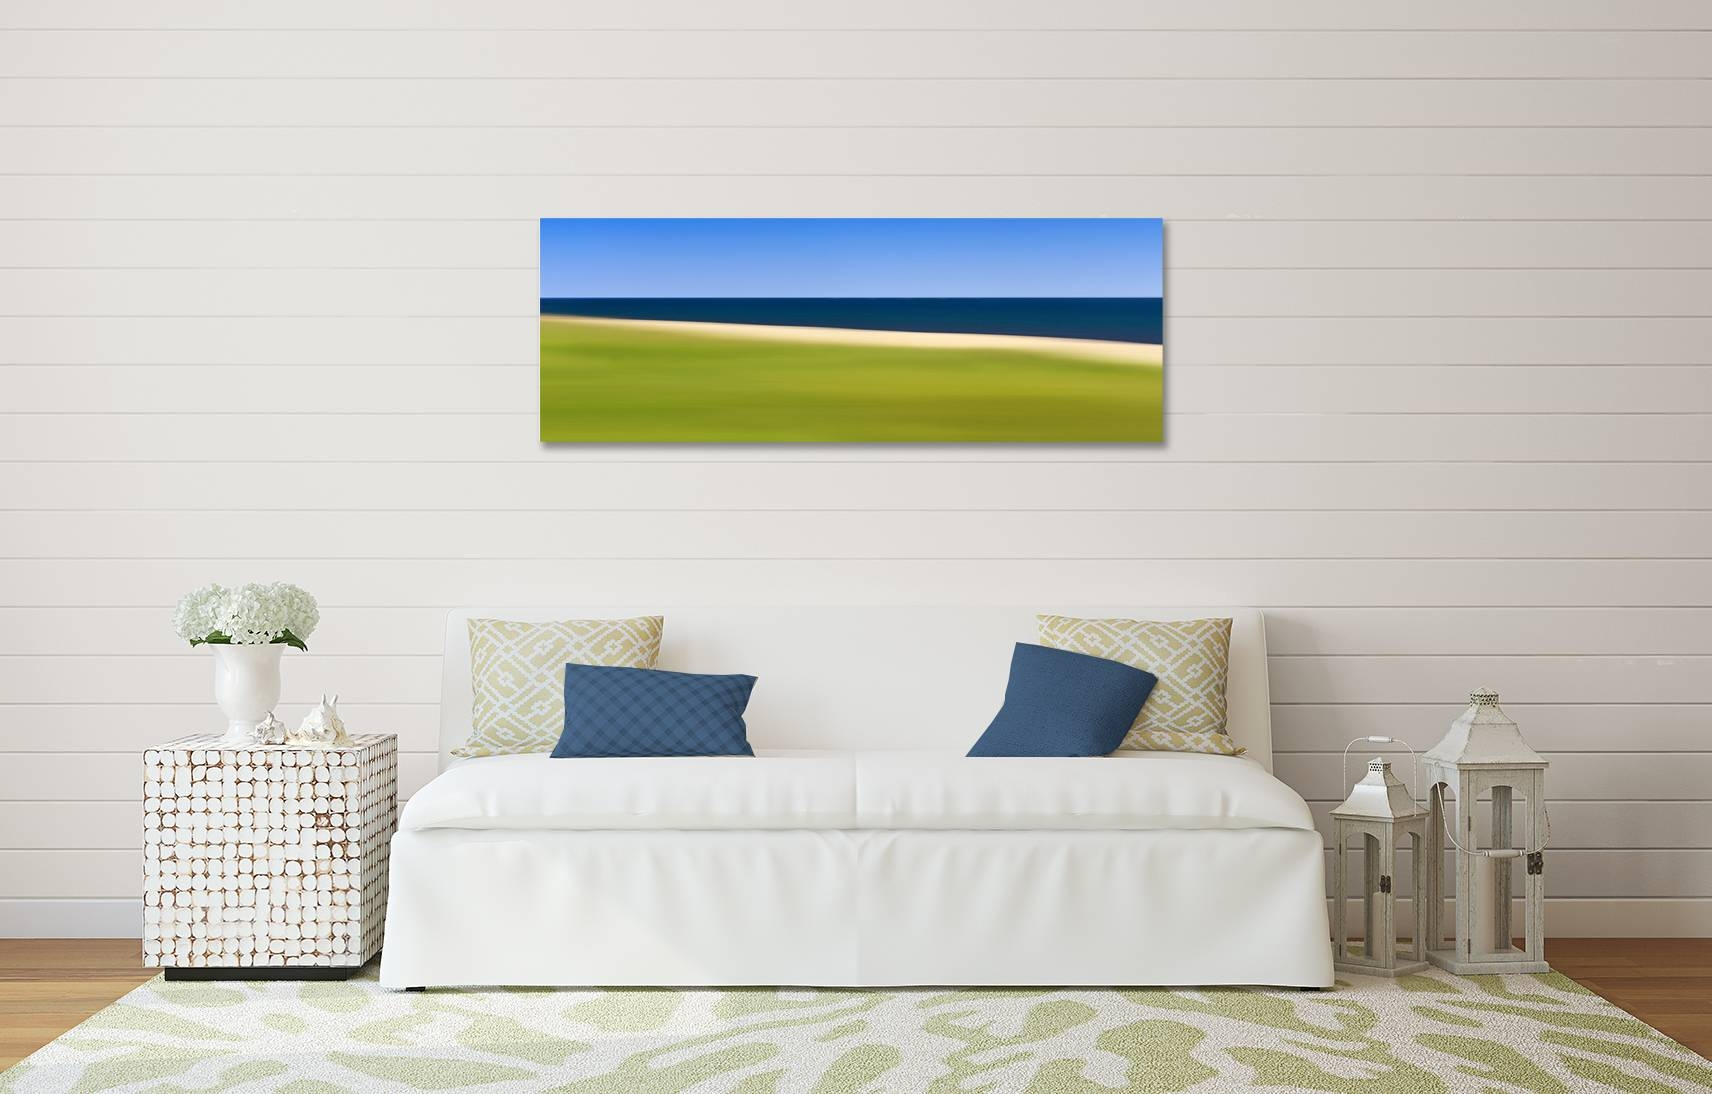 Fine Art Prints For Sale | Abstract Art, Large Canvas Wall Art With 2018 Coastal Wall Art (Gallery 5 of 12)